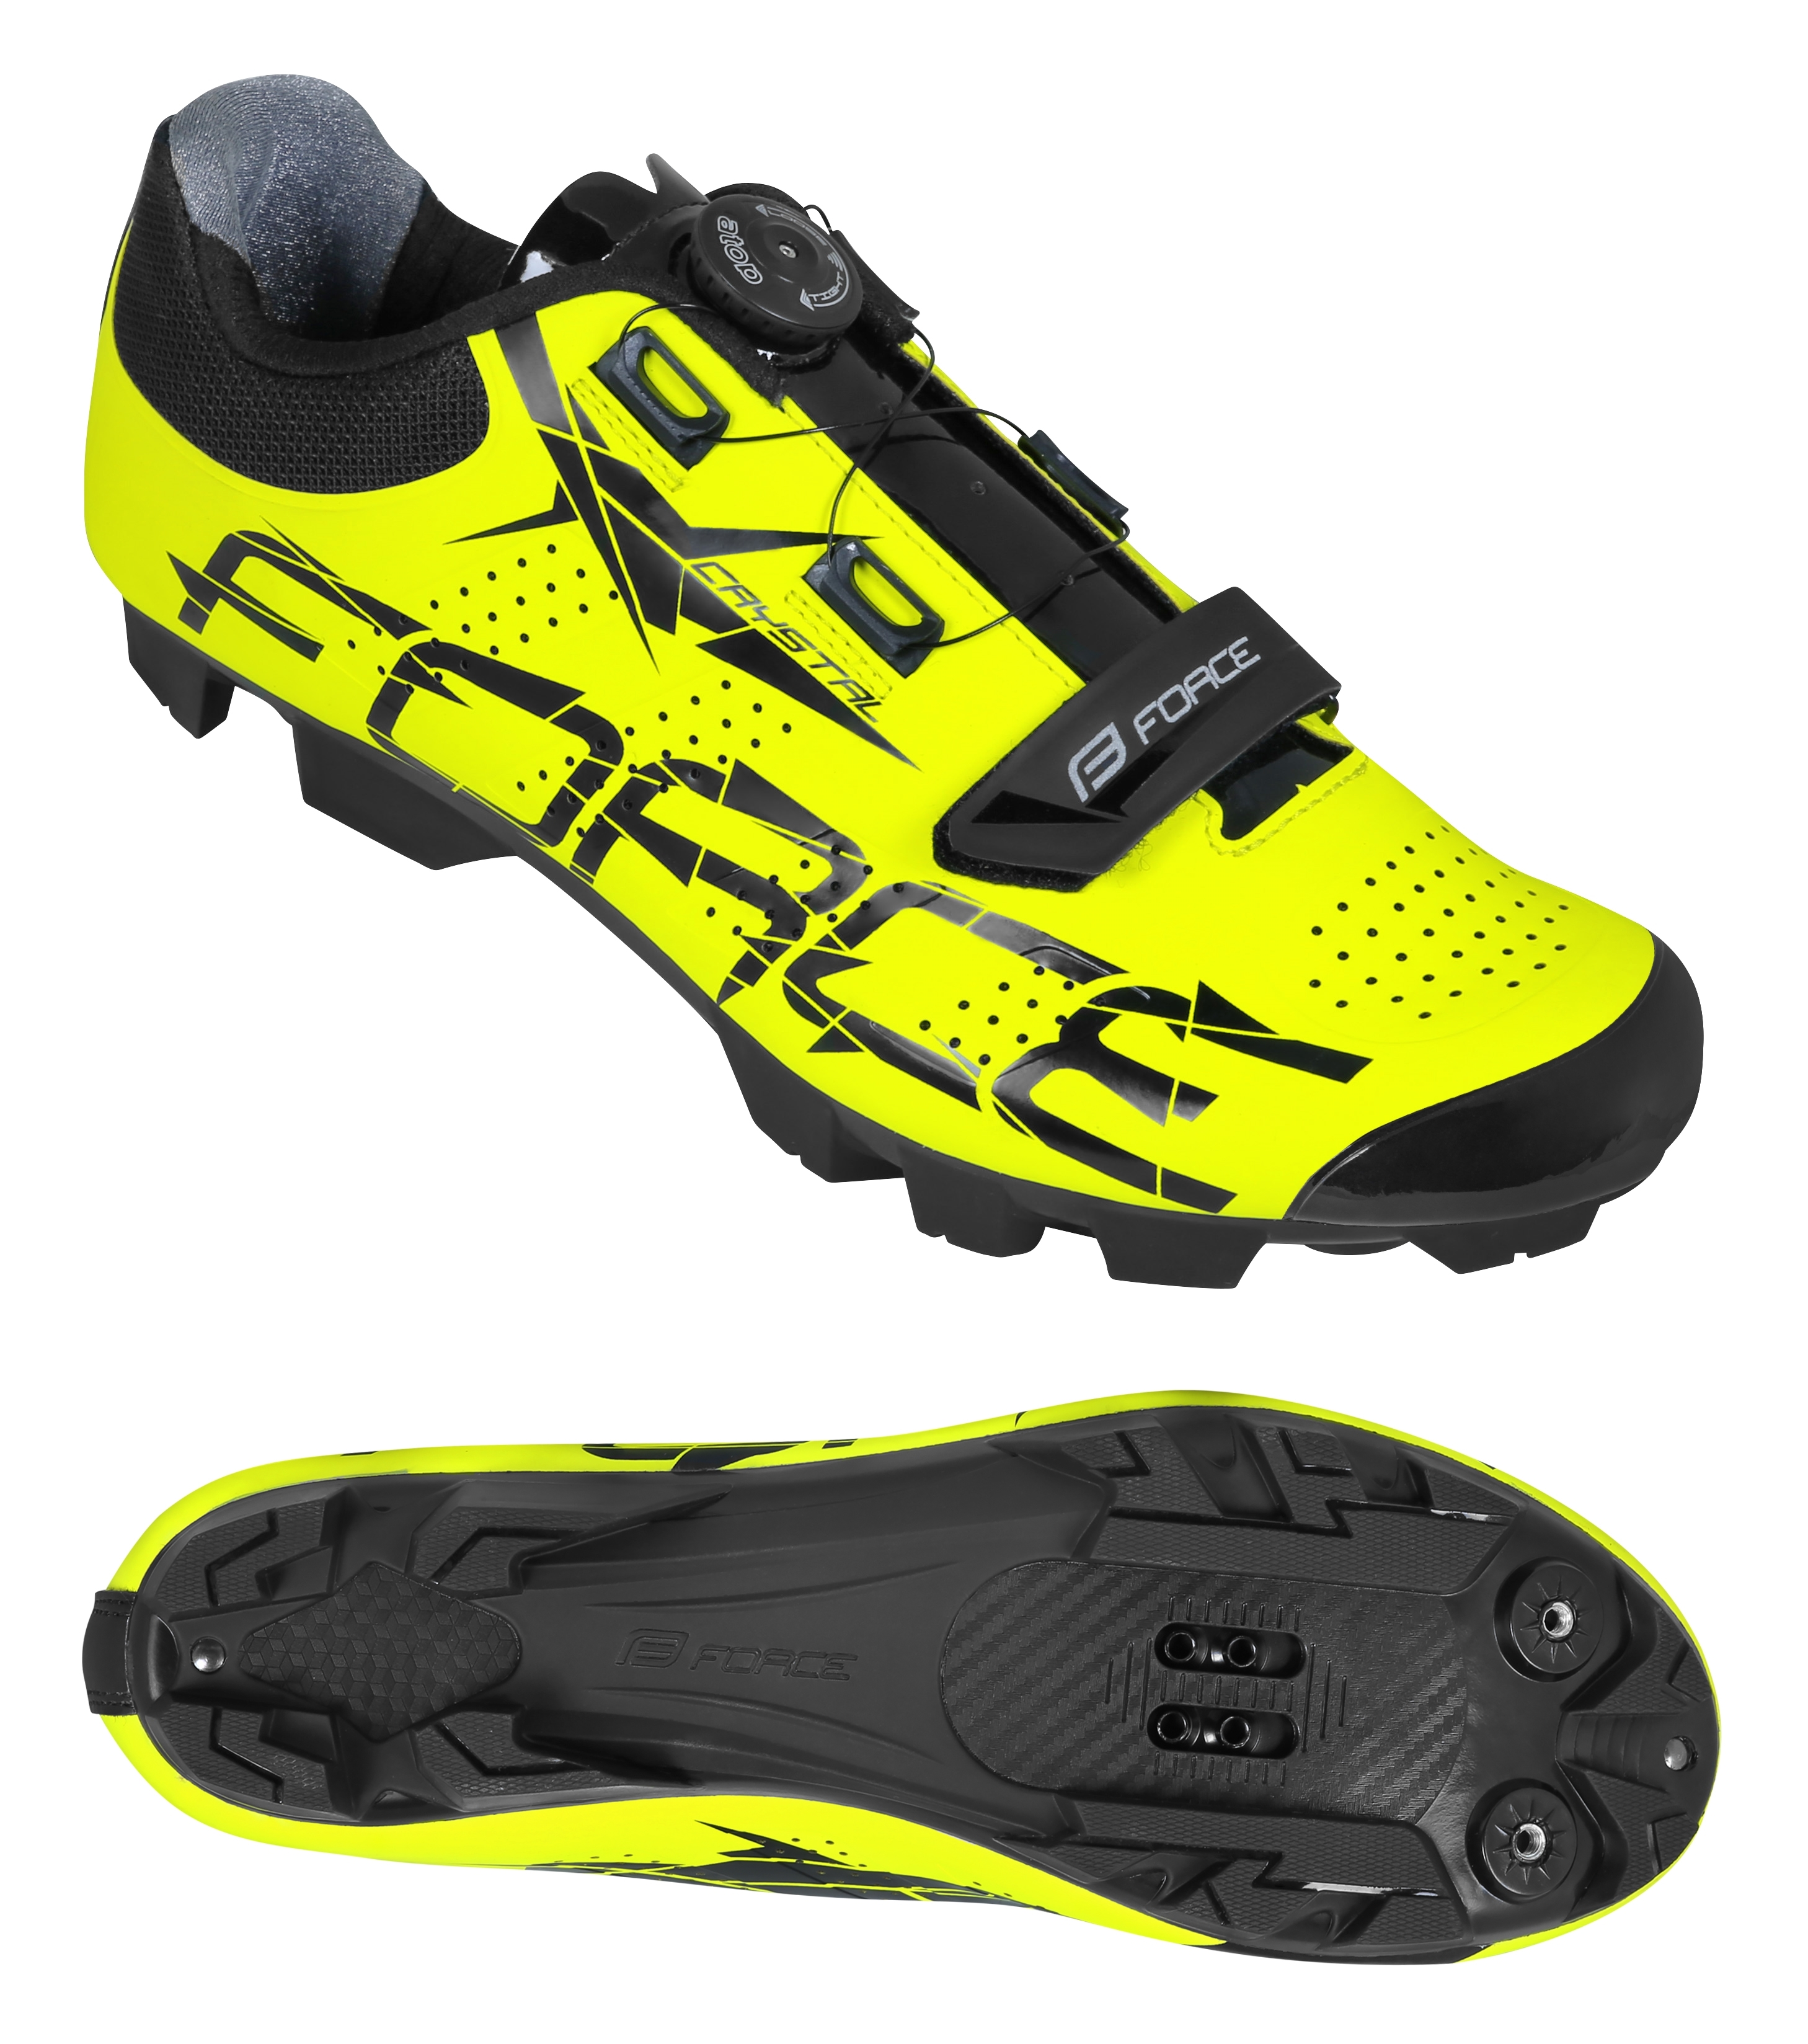 Tretry FORCE MTB CRYSTAL vel. 46, fluo